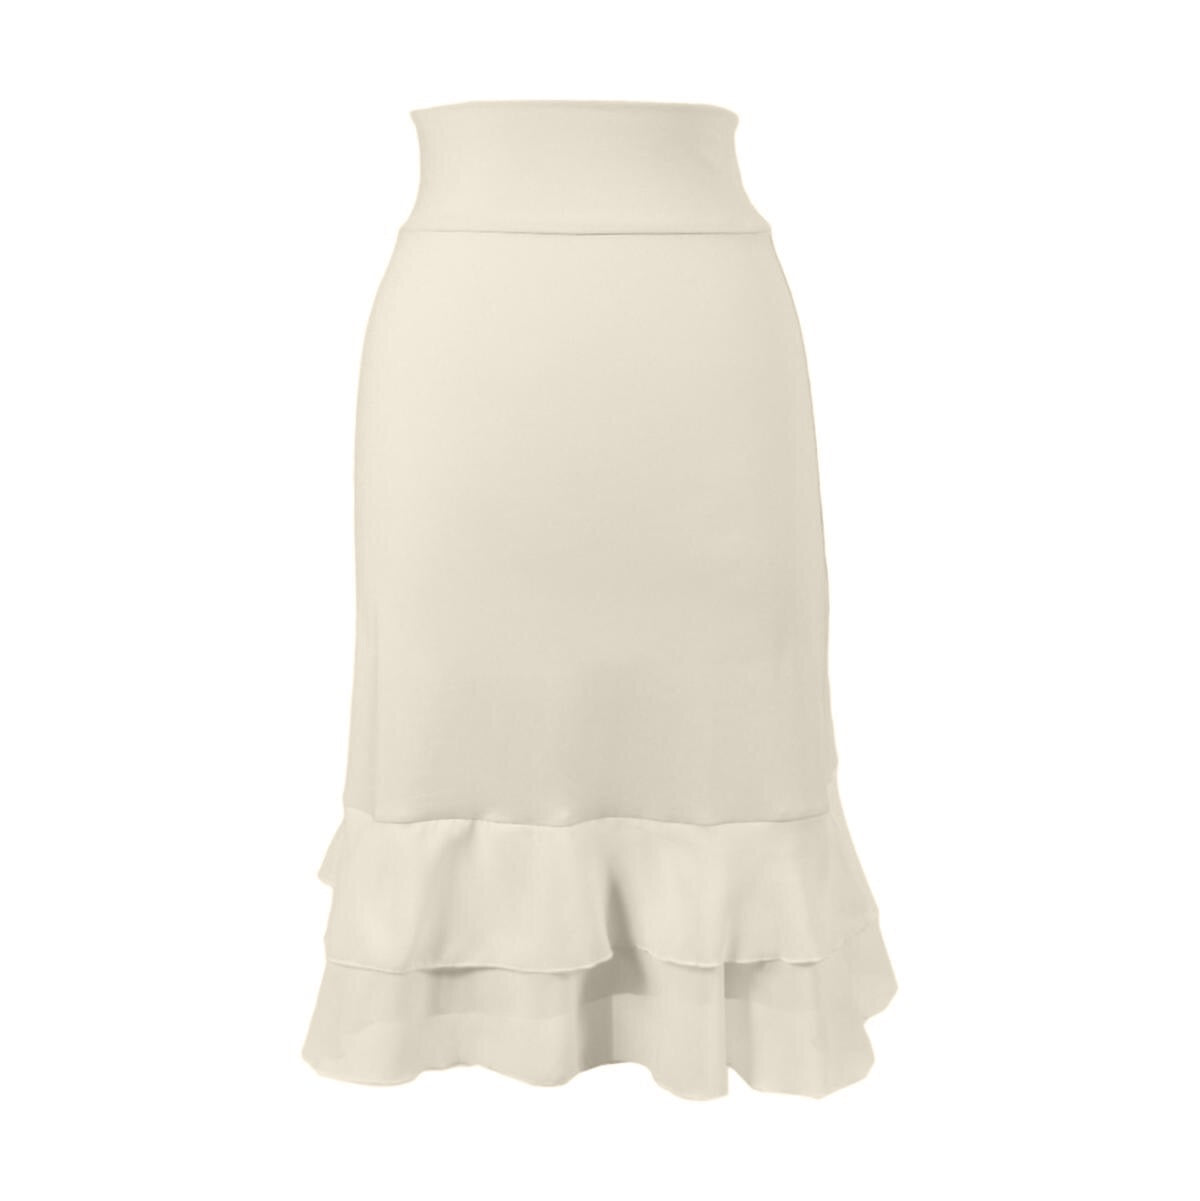 Iris Chiffon Layering Skirt | cream, skirt extenders, Peekaboo Chic | Modest Layering Apparel for women